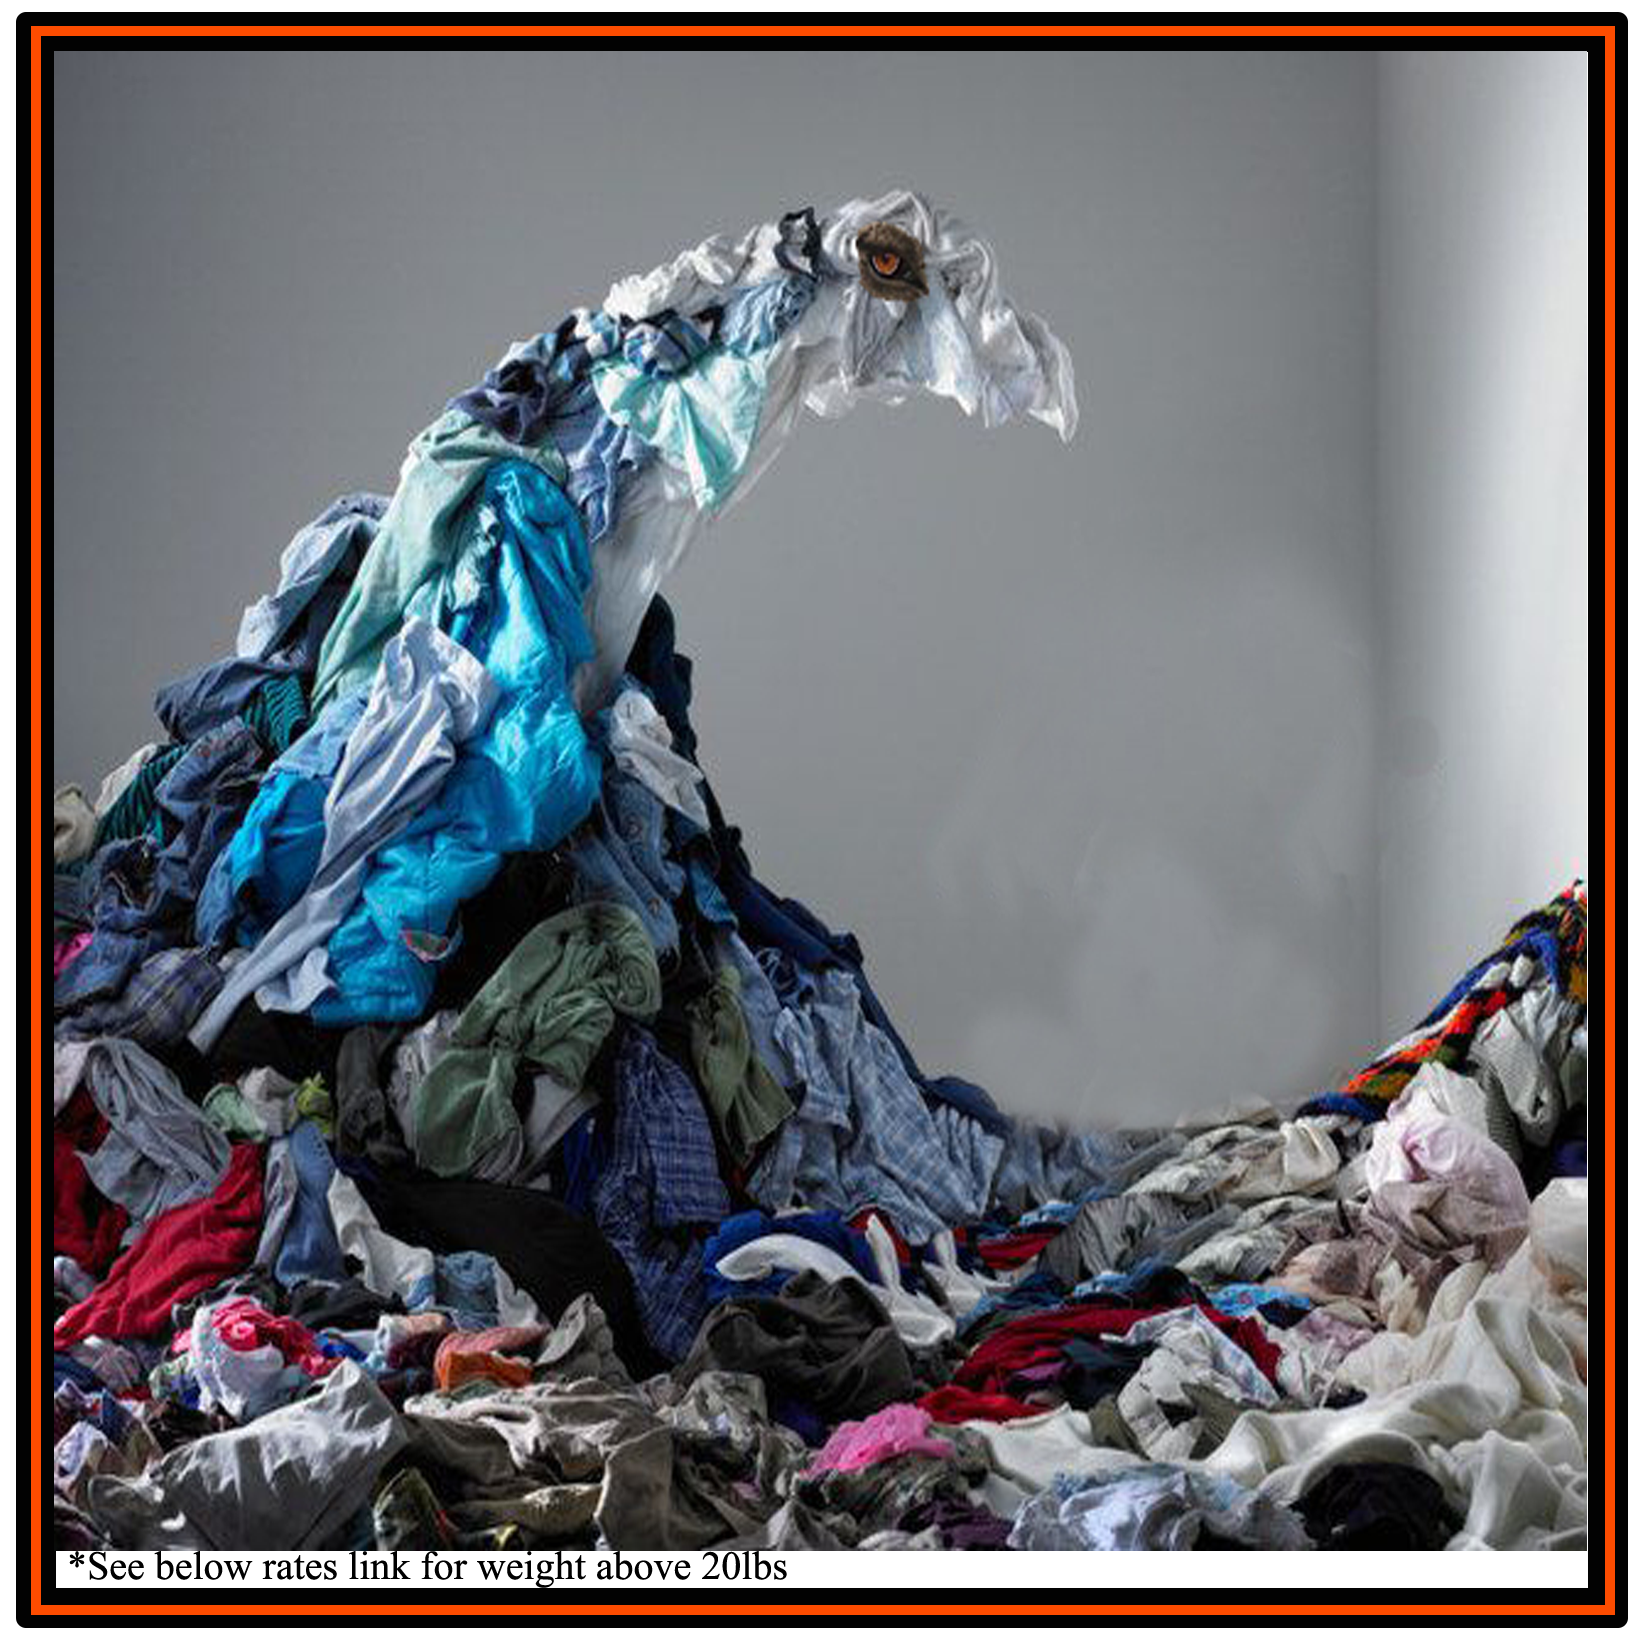 Residential Laundry Service, Laundry Pickup and Drop Off Service, Wash and Fold Service